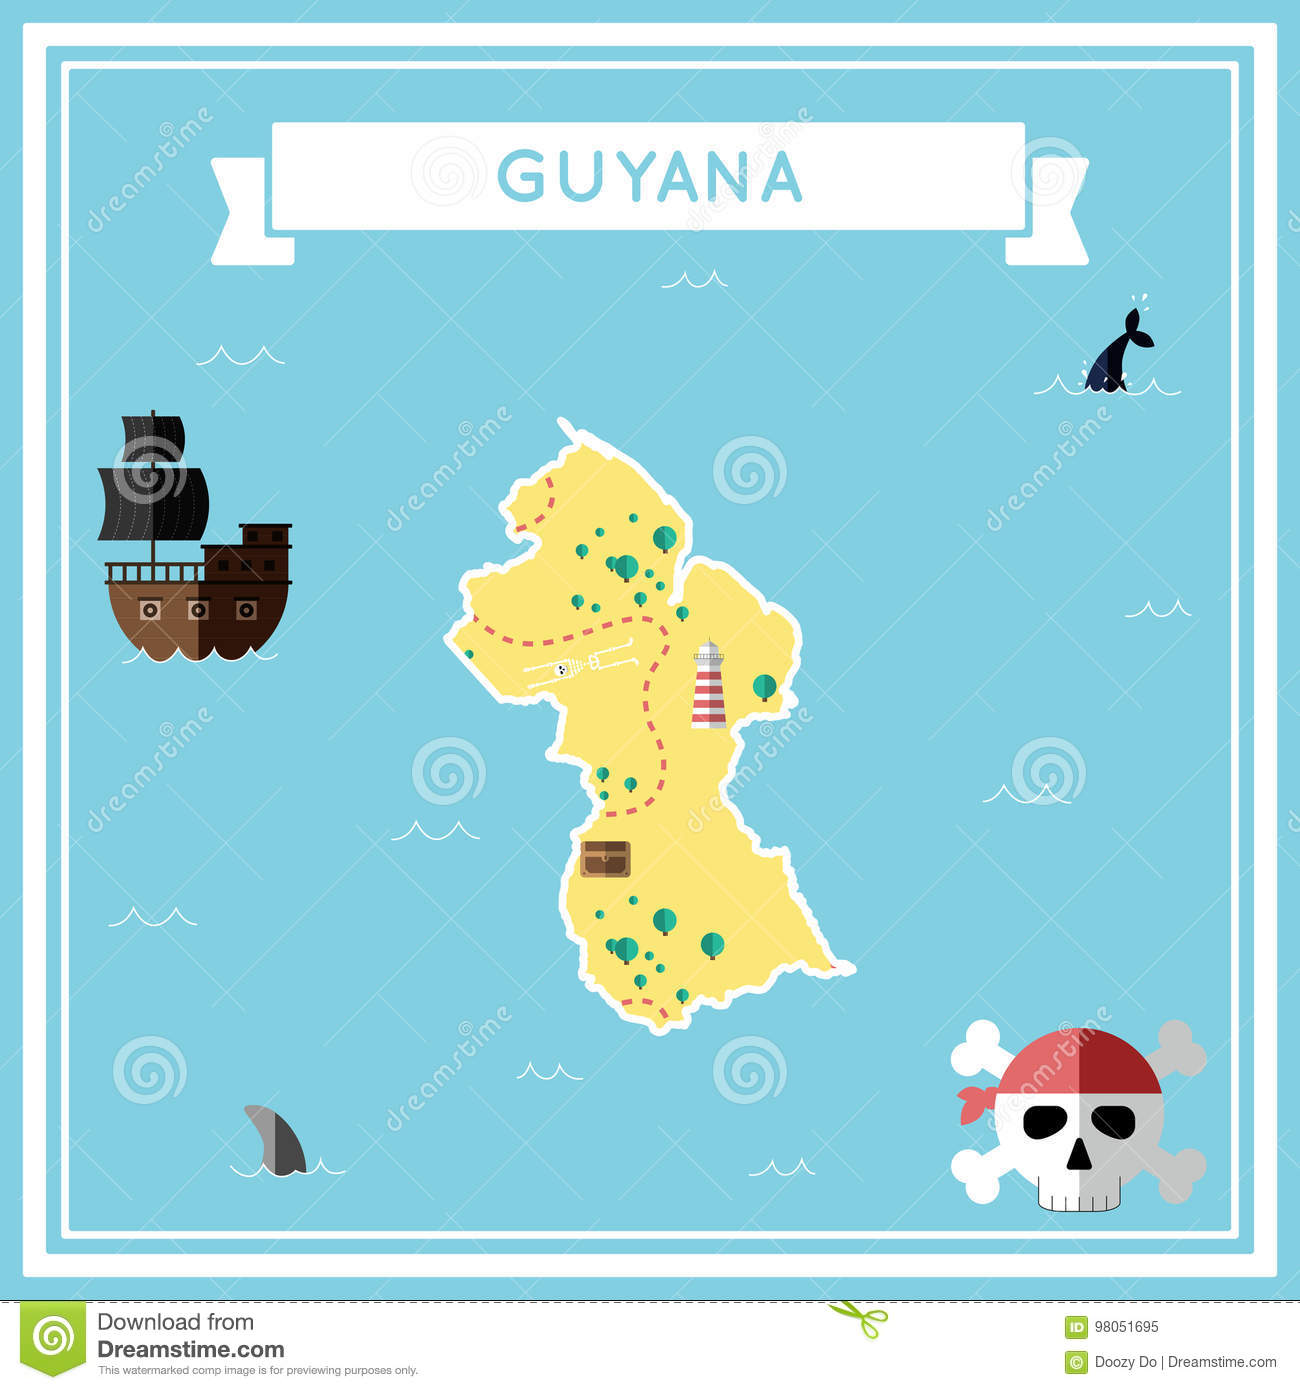 Flat Treasure Map Of Guyana. Stock Vector - Illustration of flat ...